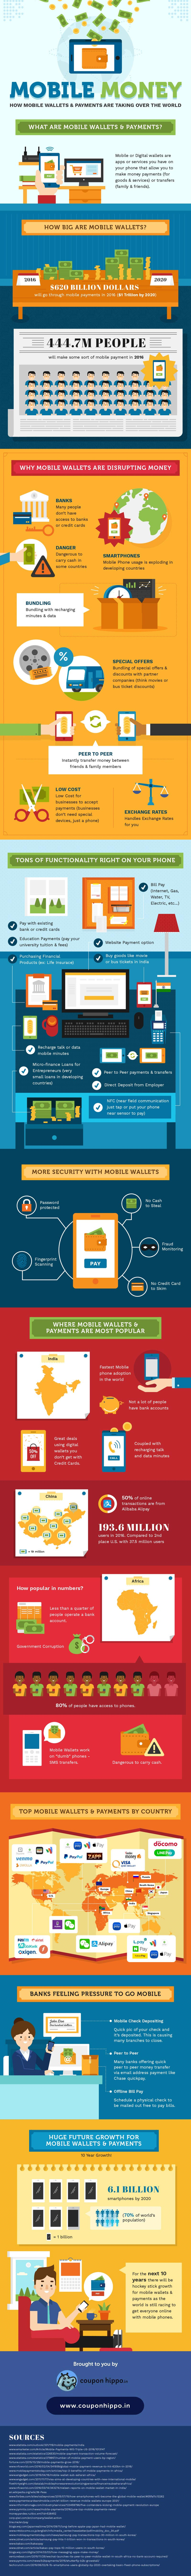 mobile_wallets_infographic